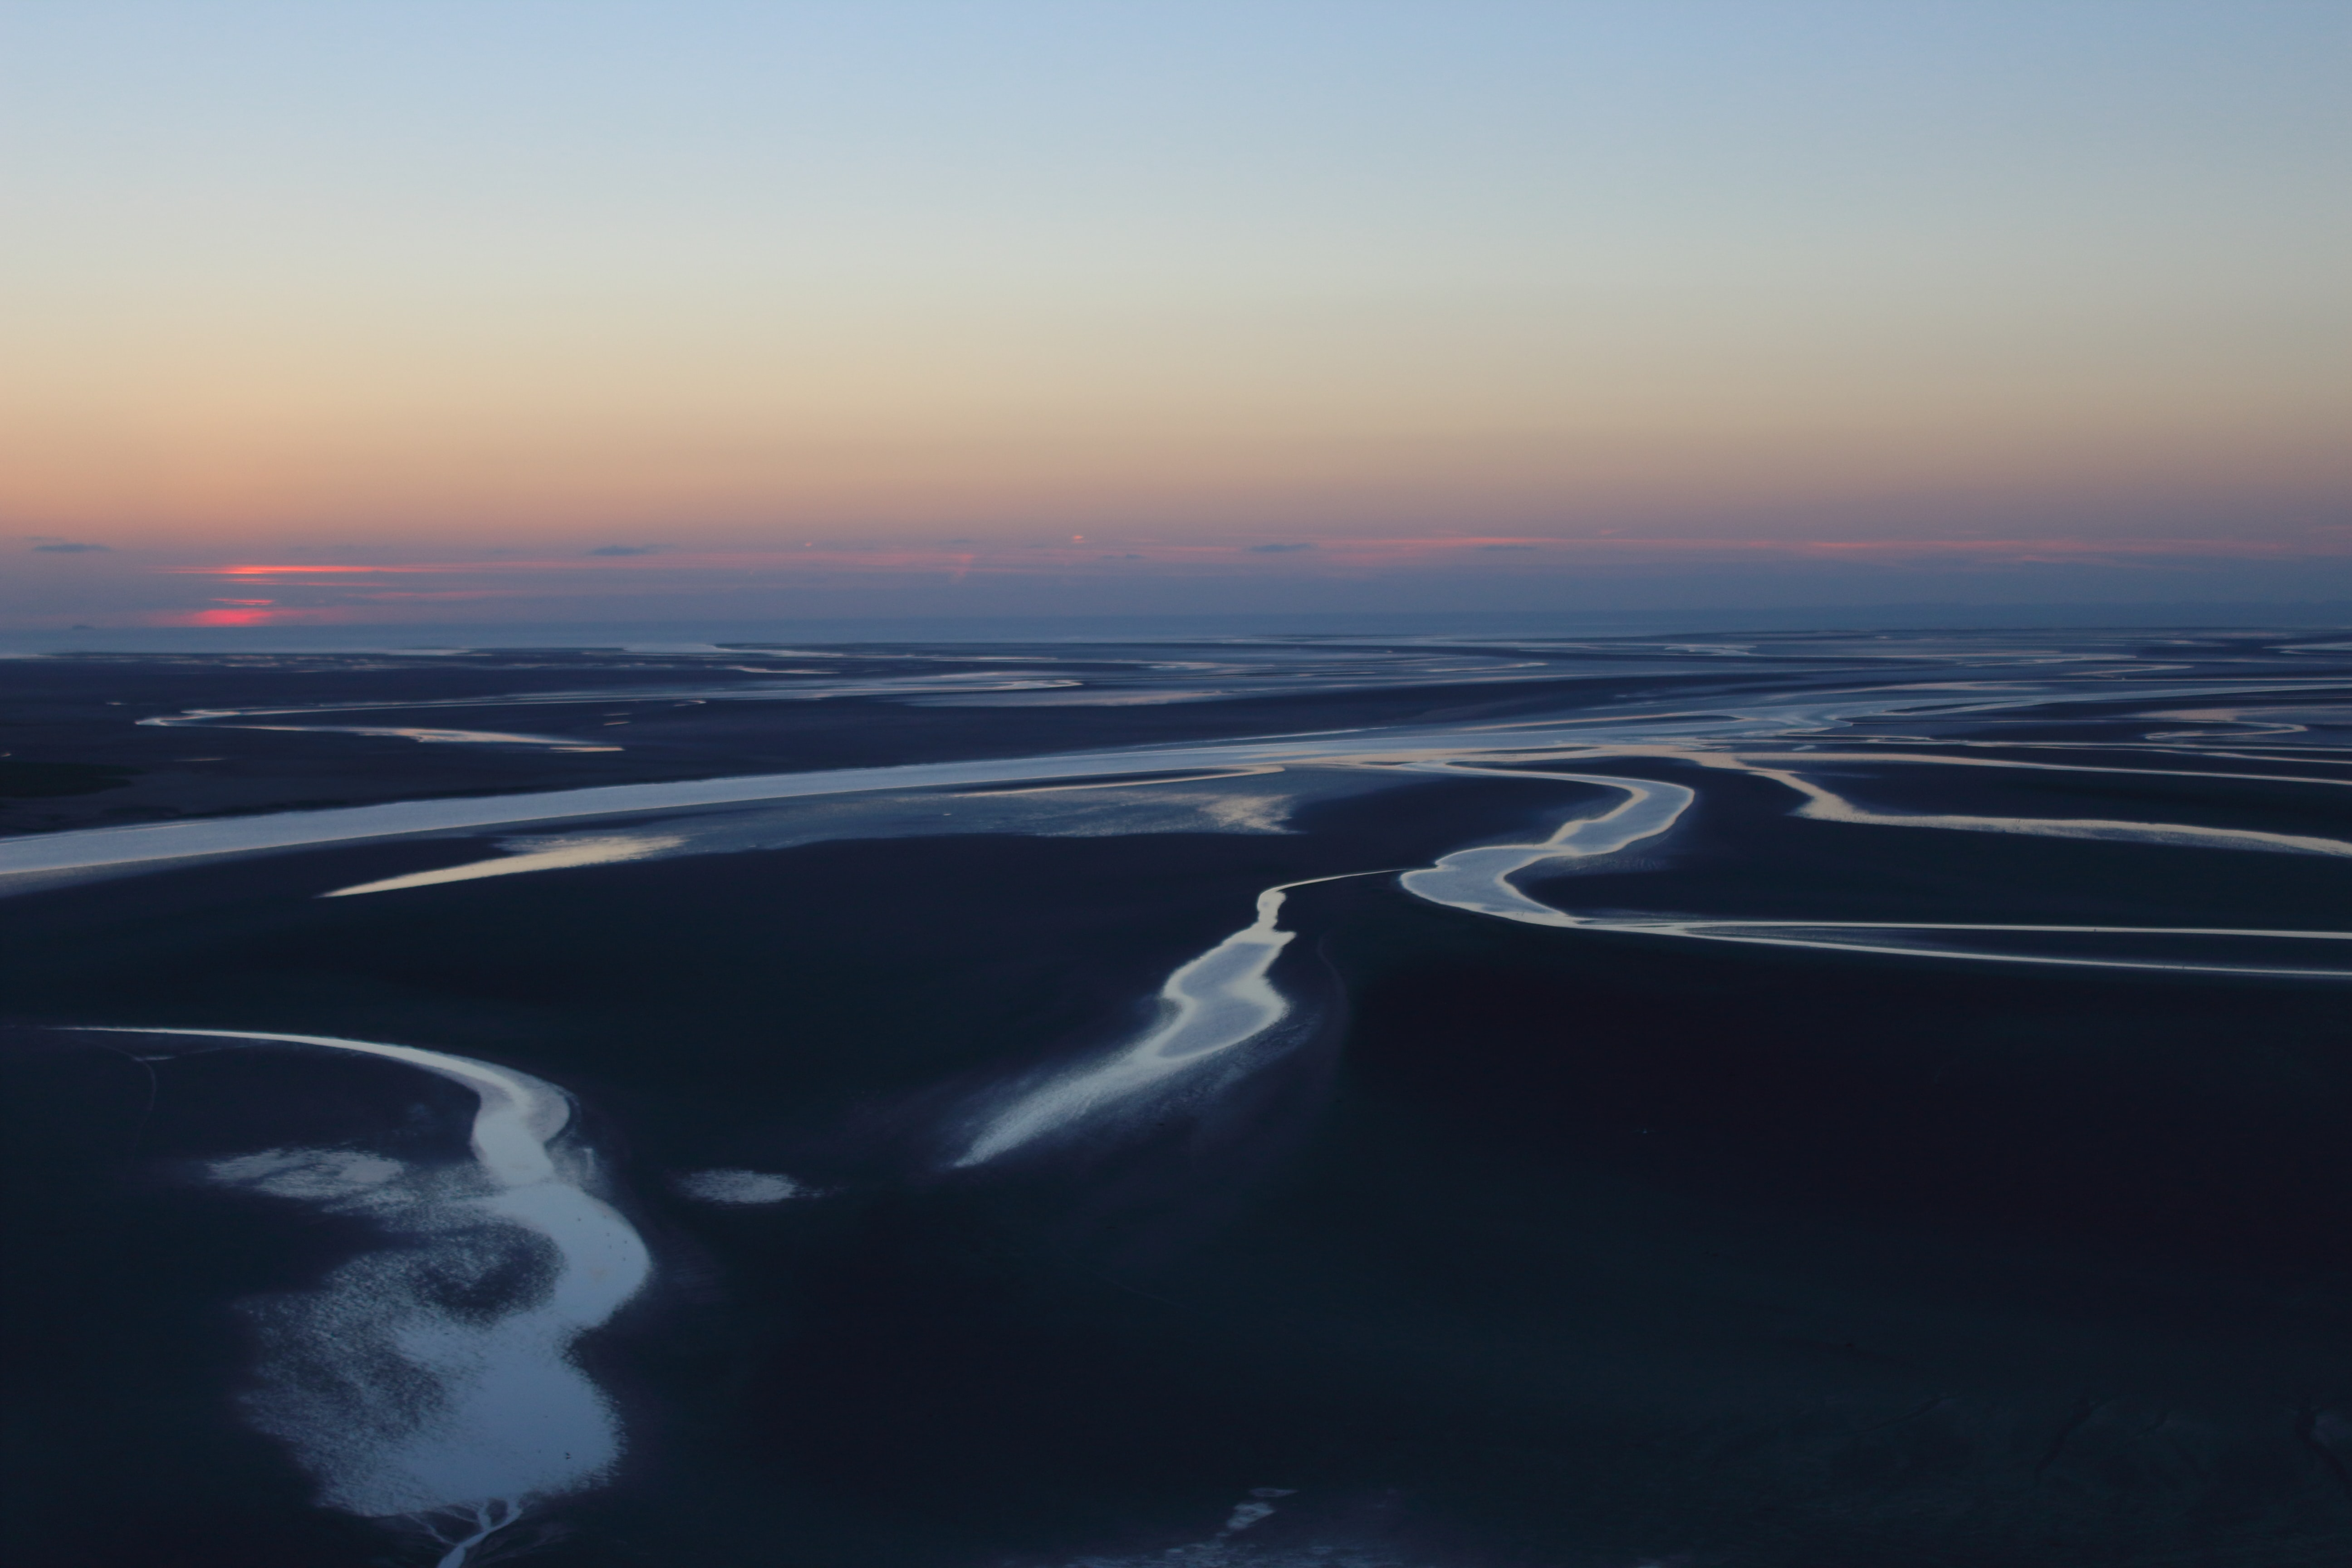 A hazy shot of the sea during the low tide at sunset